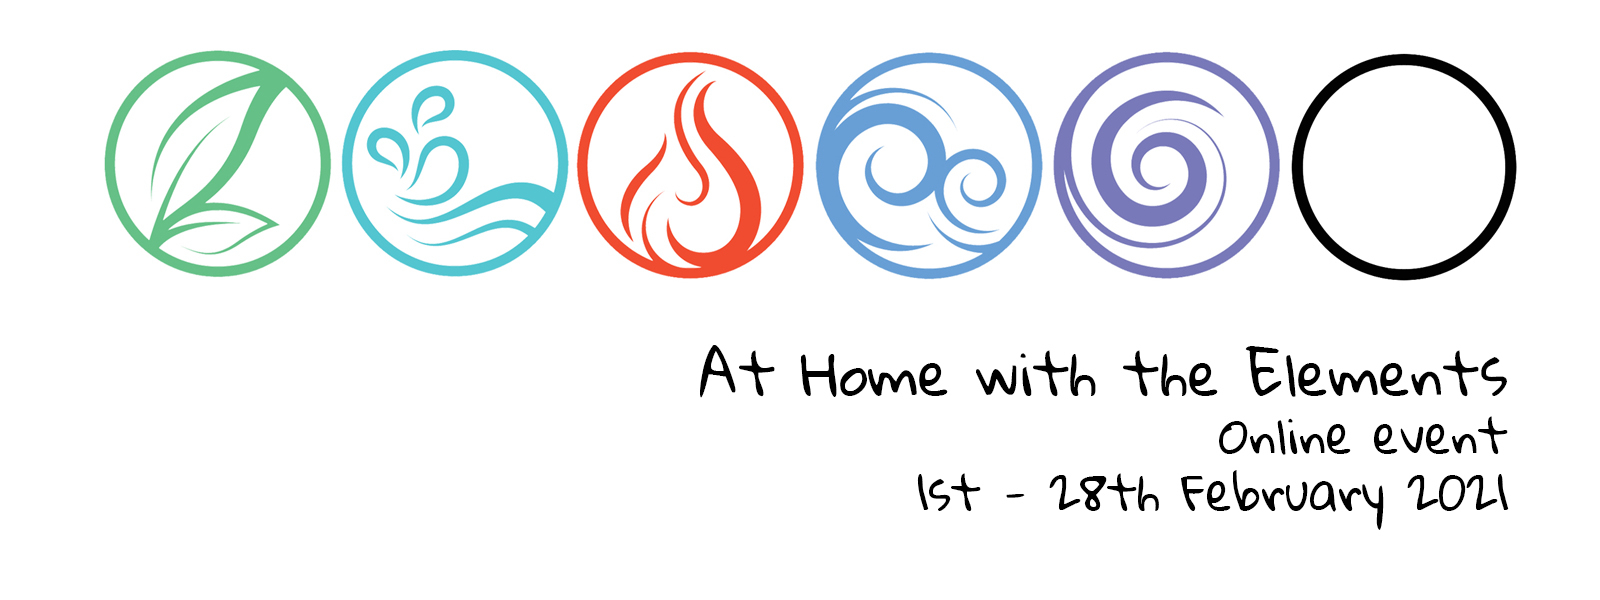 Element symbols and at home with the elements online event in text